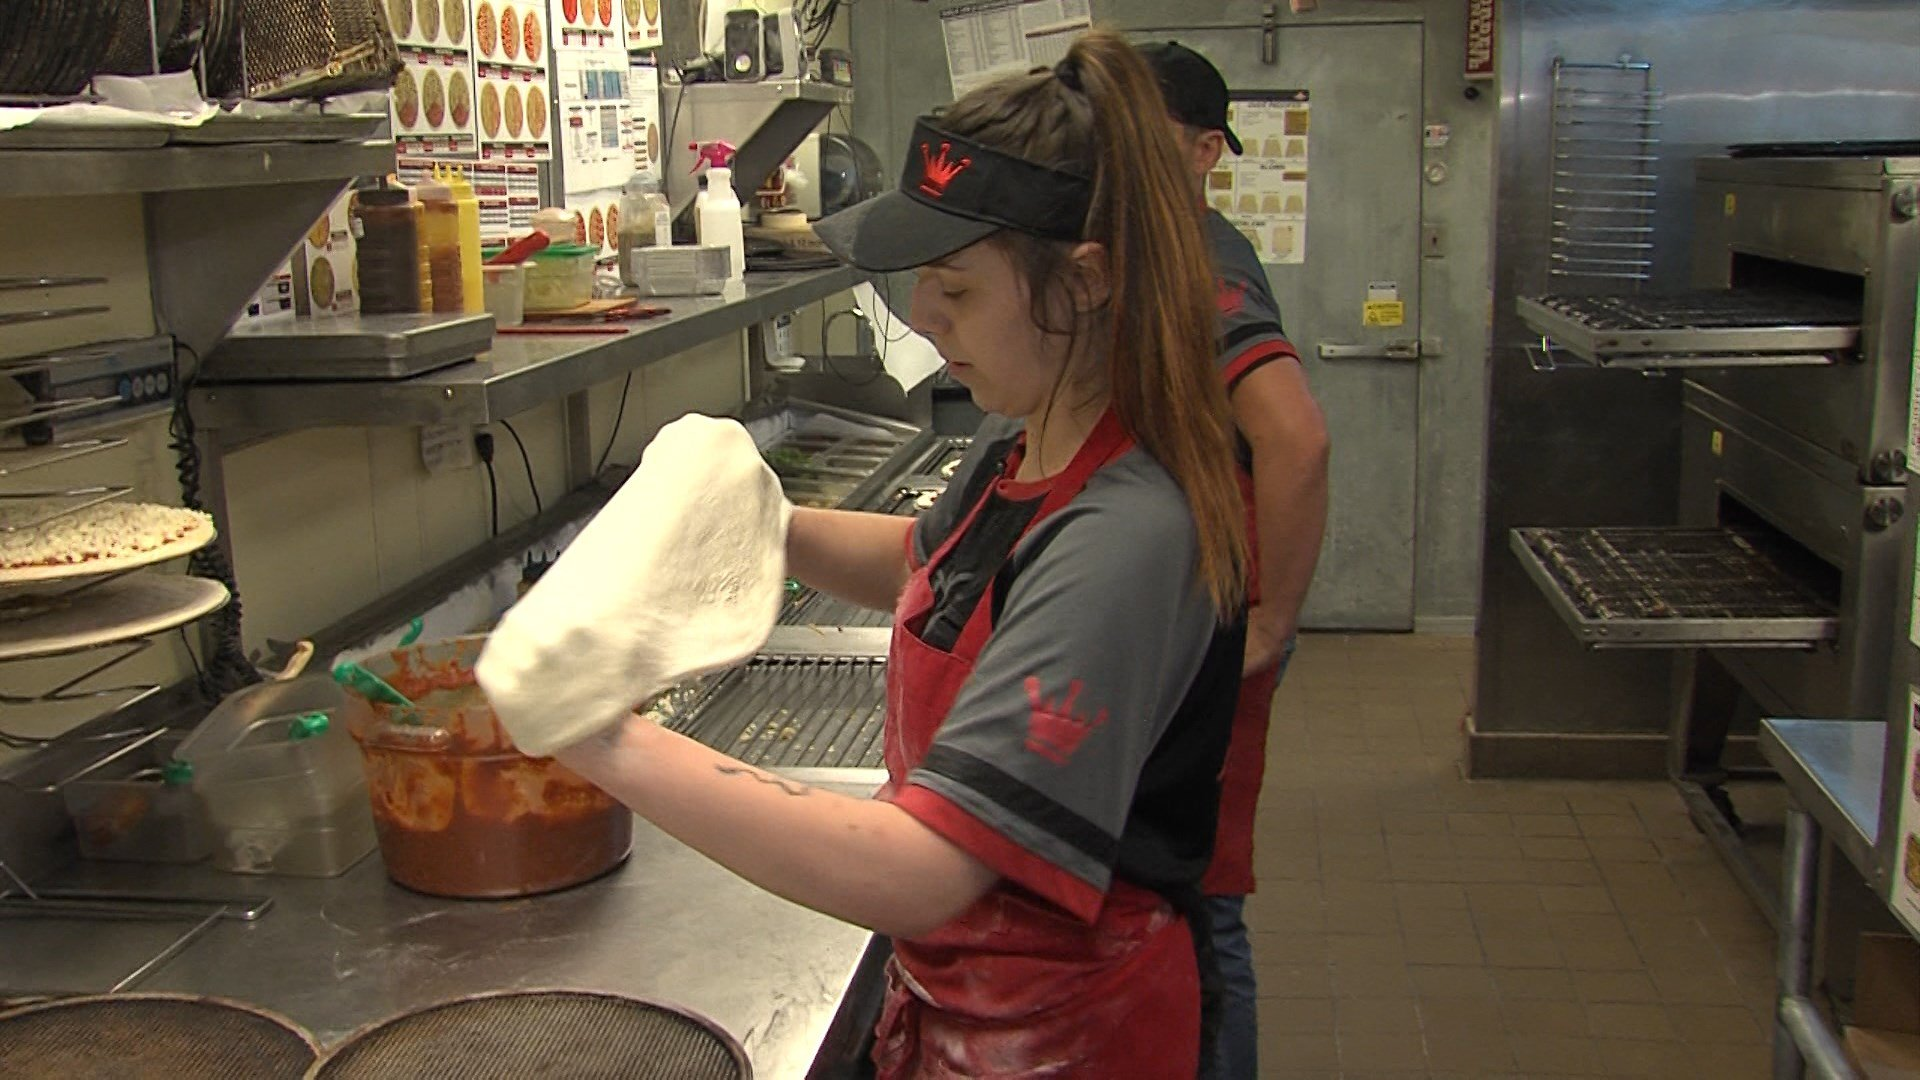 lincoln woman heading to national pizza tossing